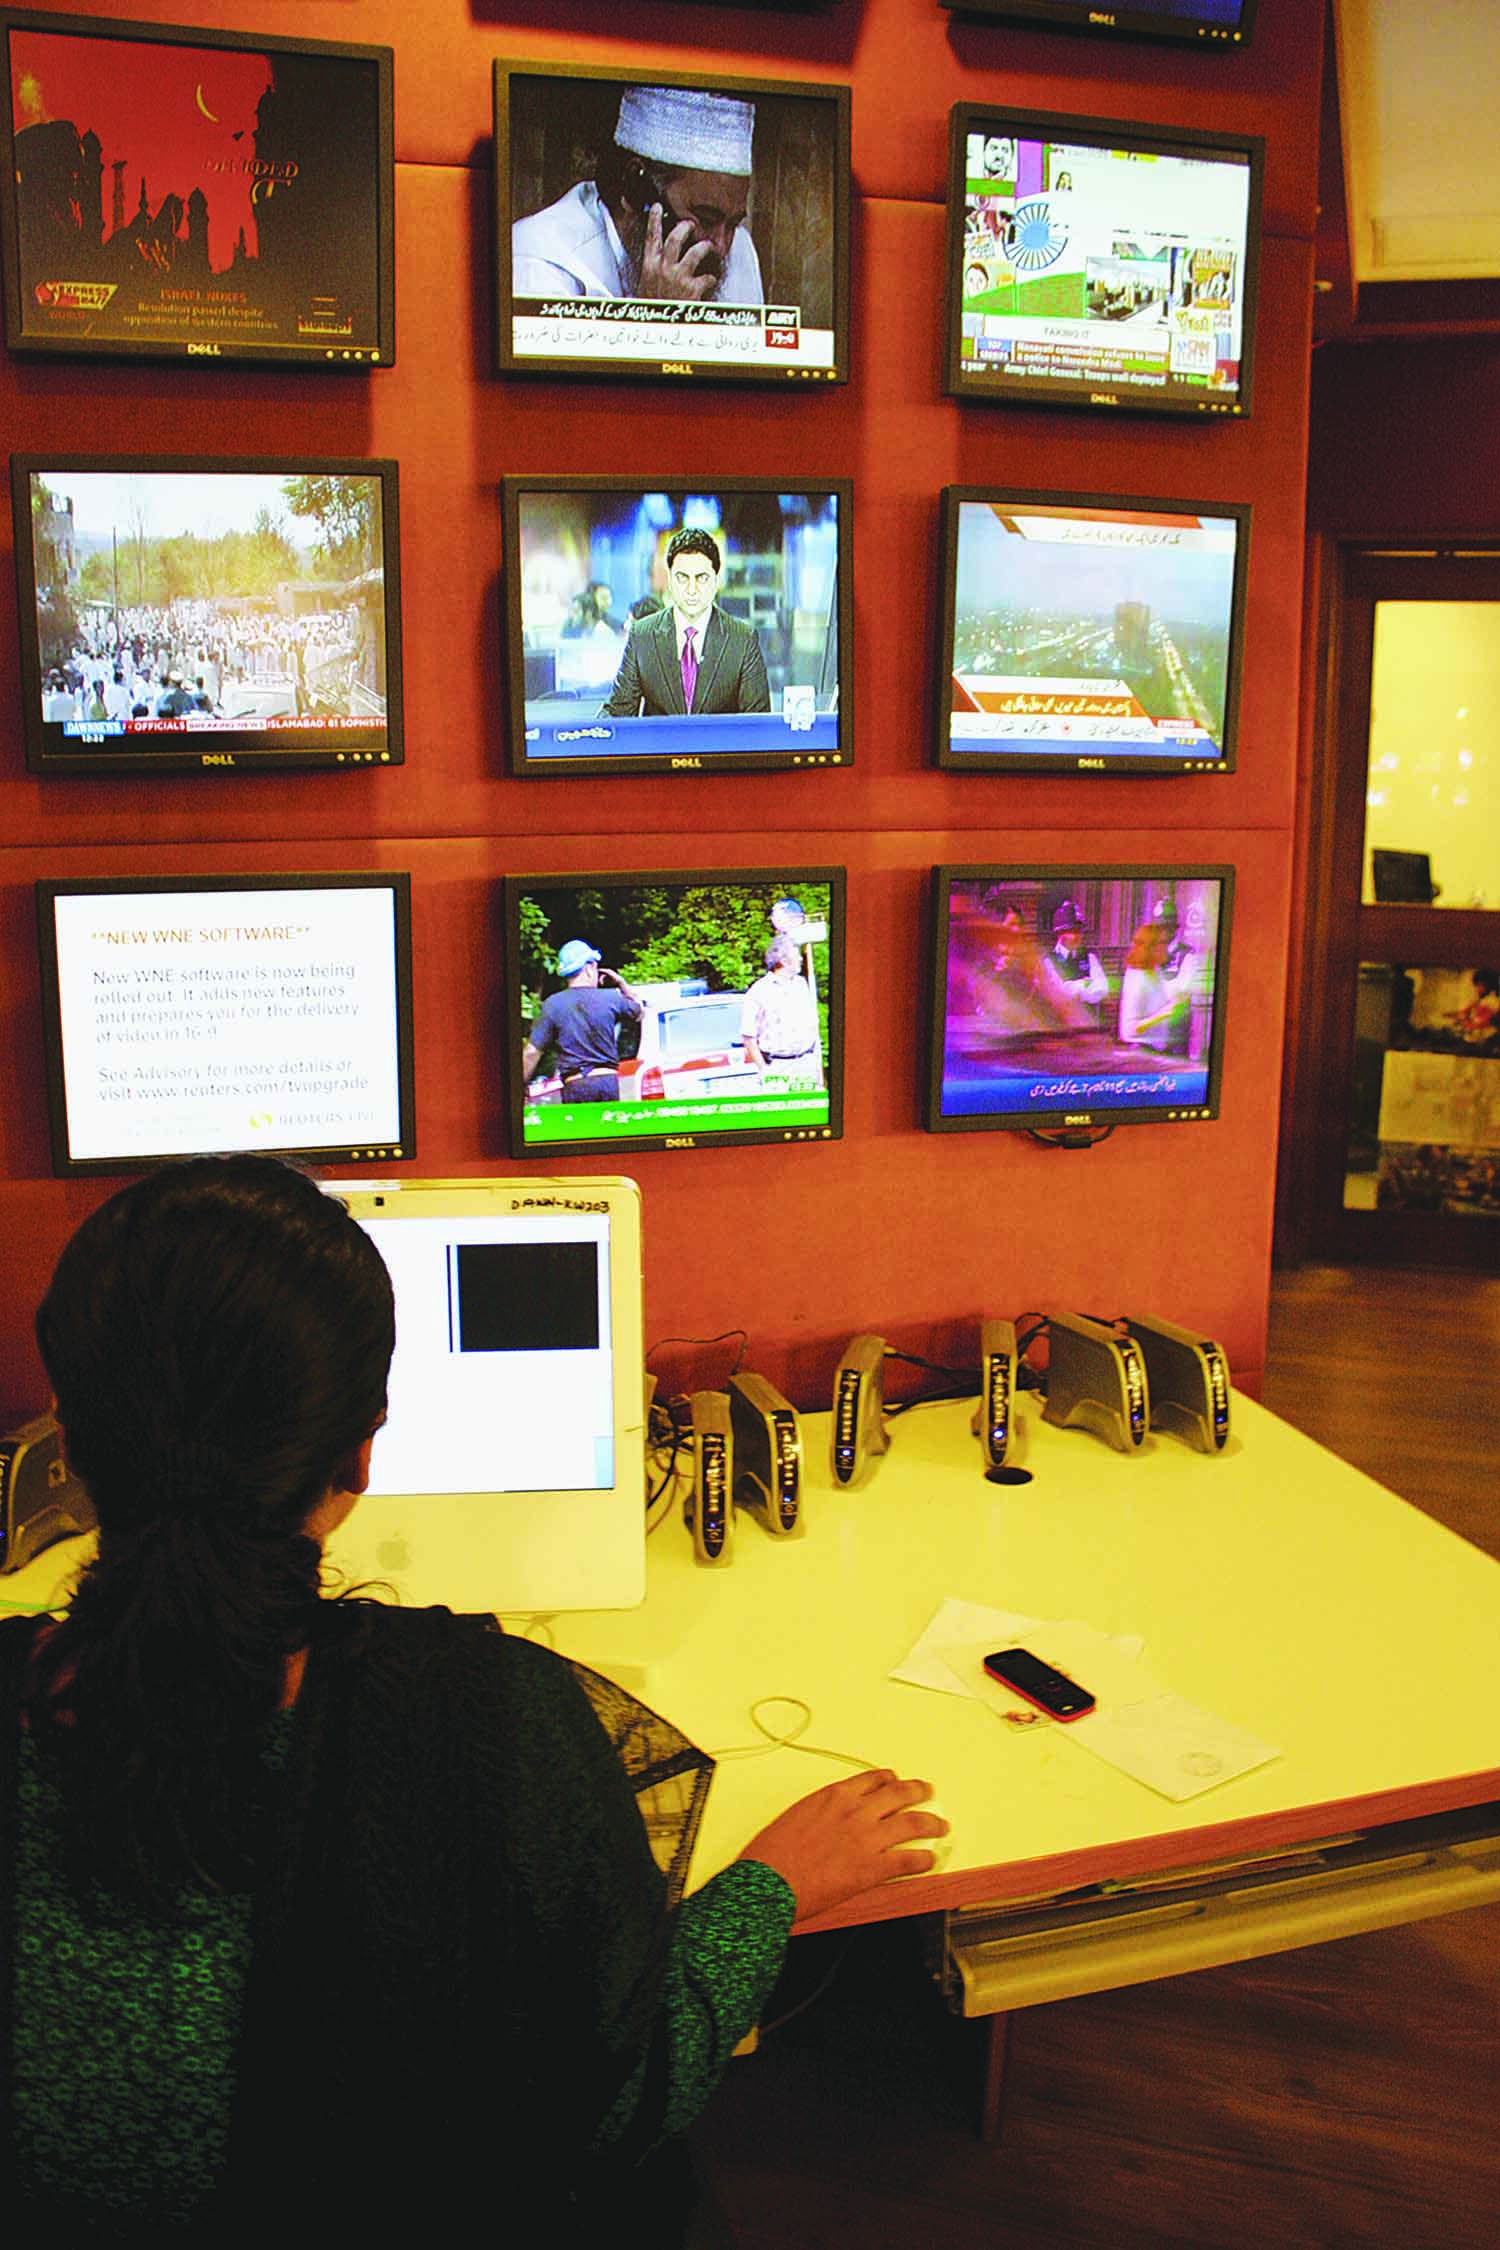 The last 15 years have seen a surge in the number of television channels and radio stations in the country. Seen here is a typical newsroom at a leading television channel, keeping track of multiple rivals to ensure being on the top of the competition.